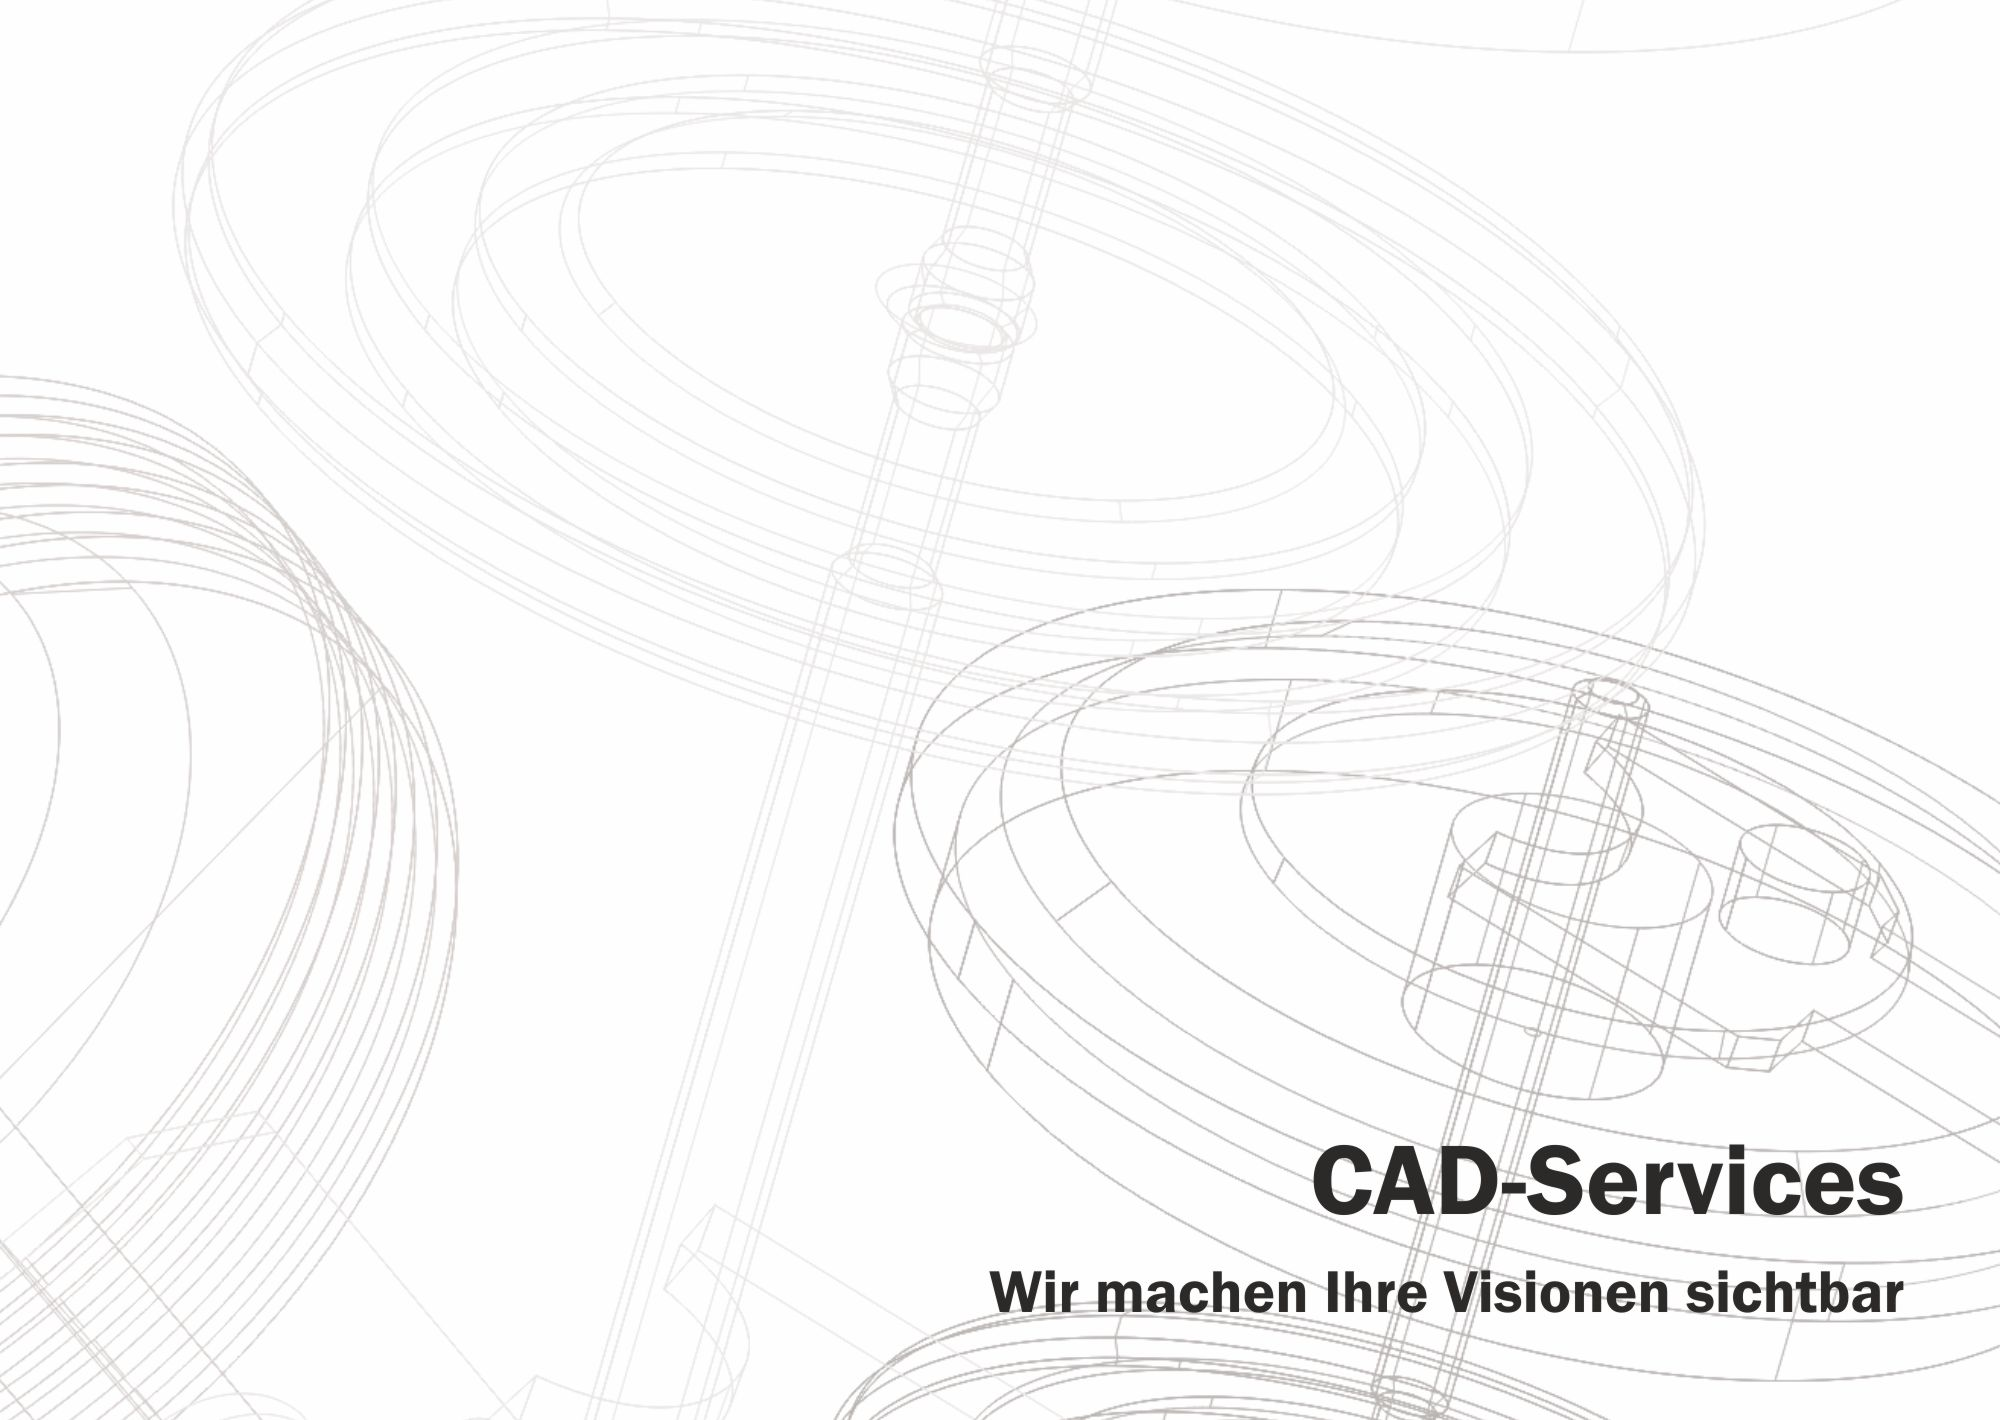 cad services Folder Vorderseite